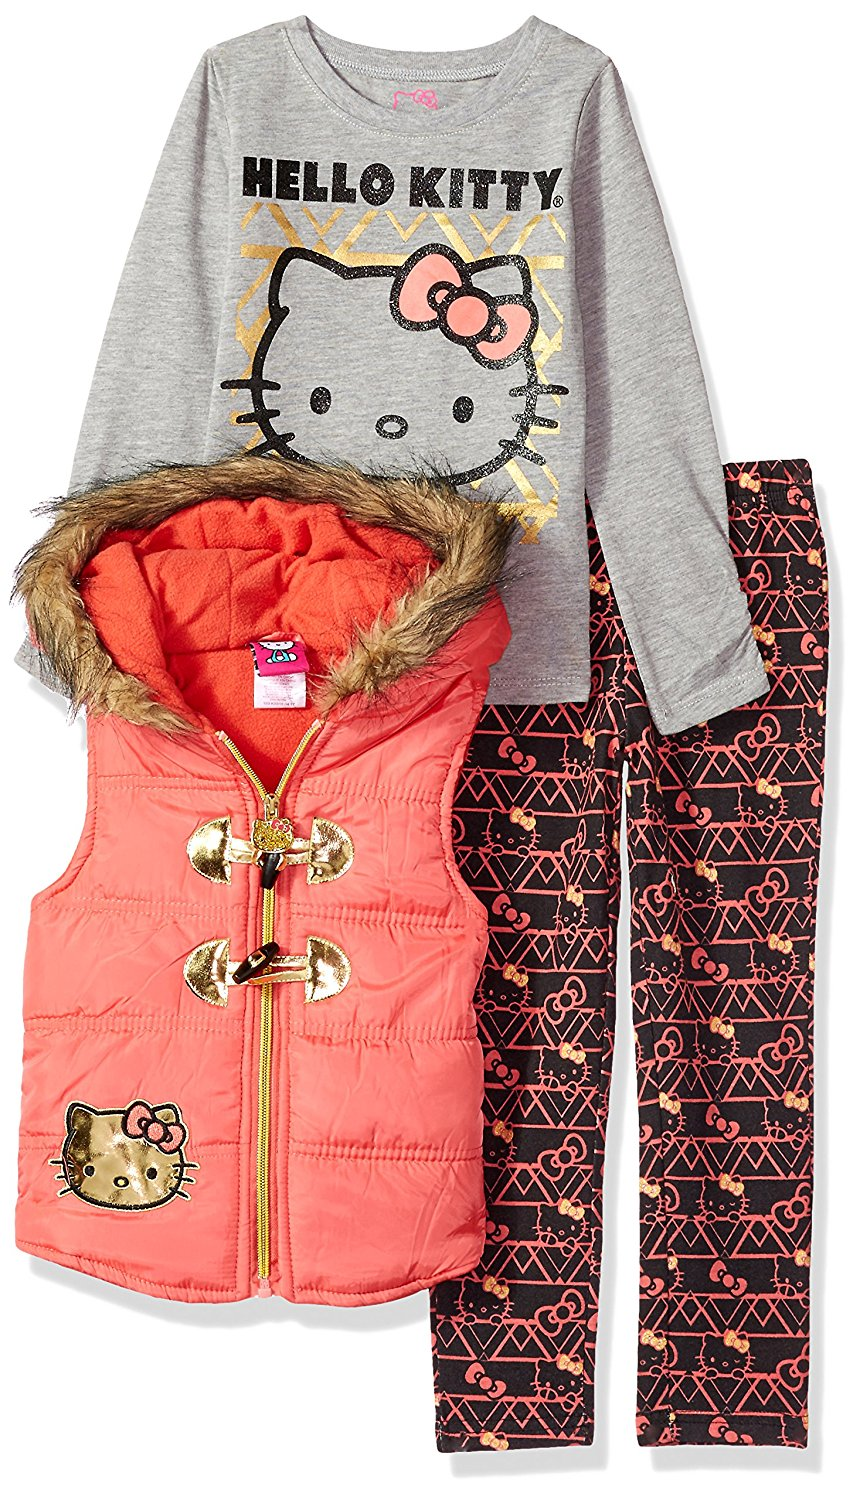 5df3f0c9a Get Quotations · Hello Kitty Girls' Little 3 Piece Tee, Vest, and Legging  Set